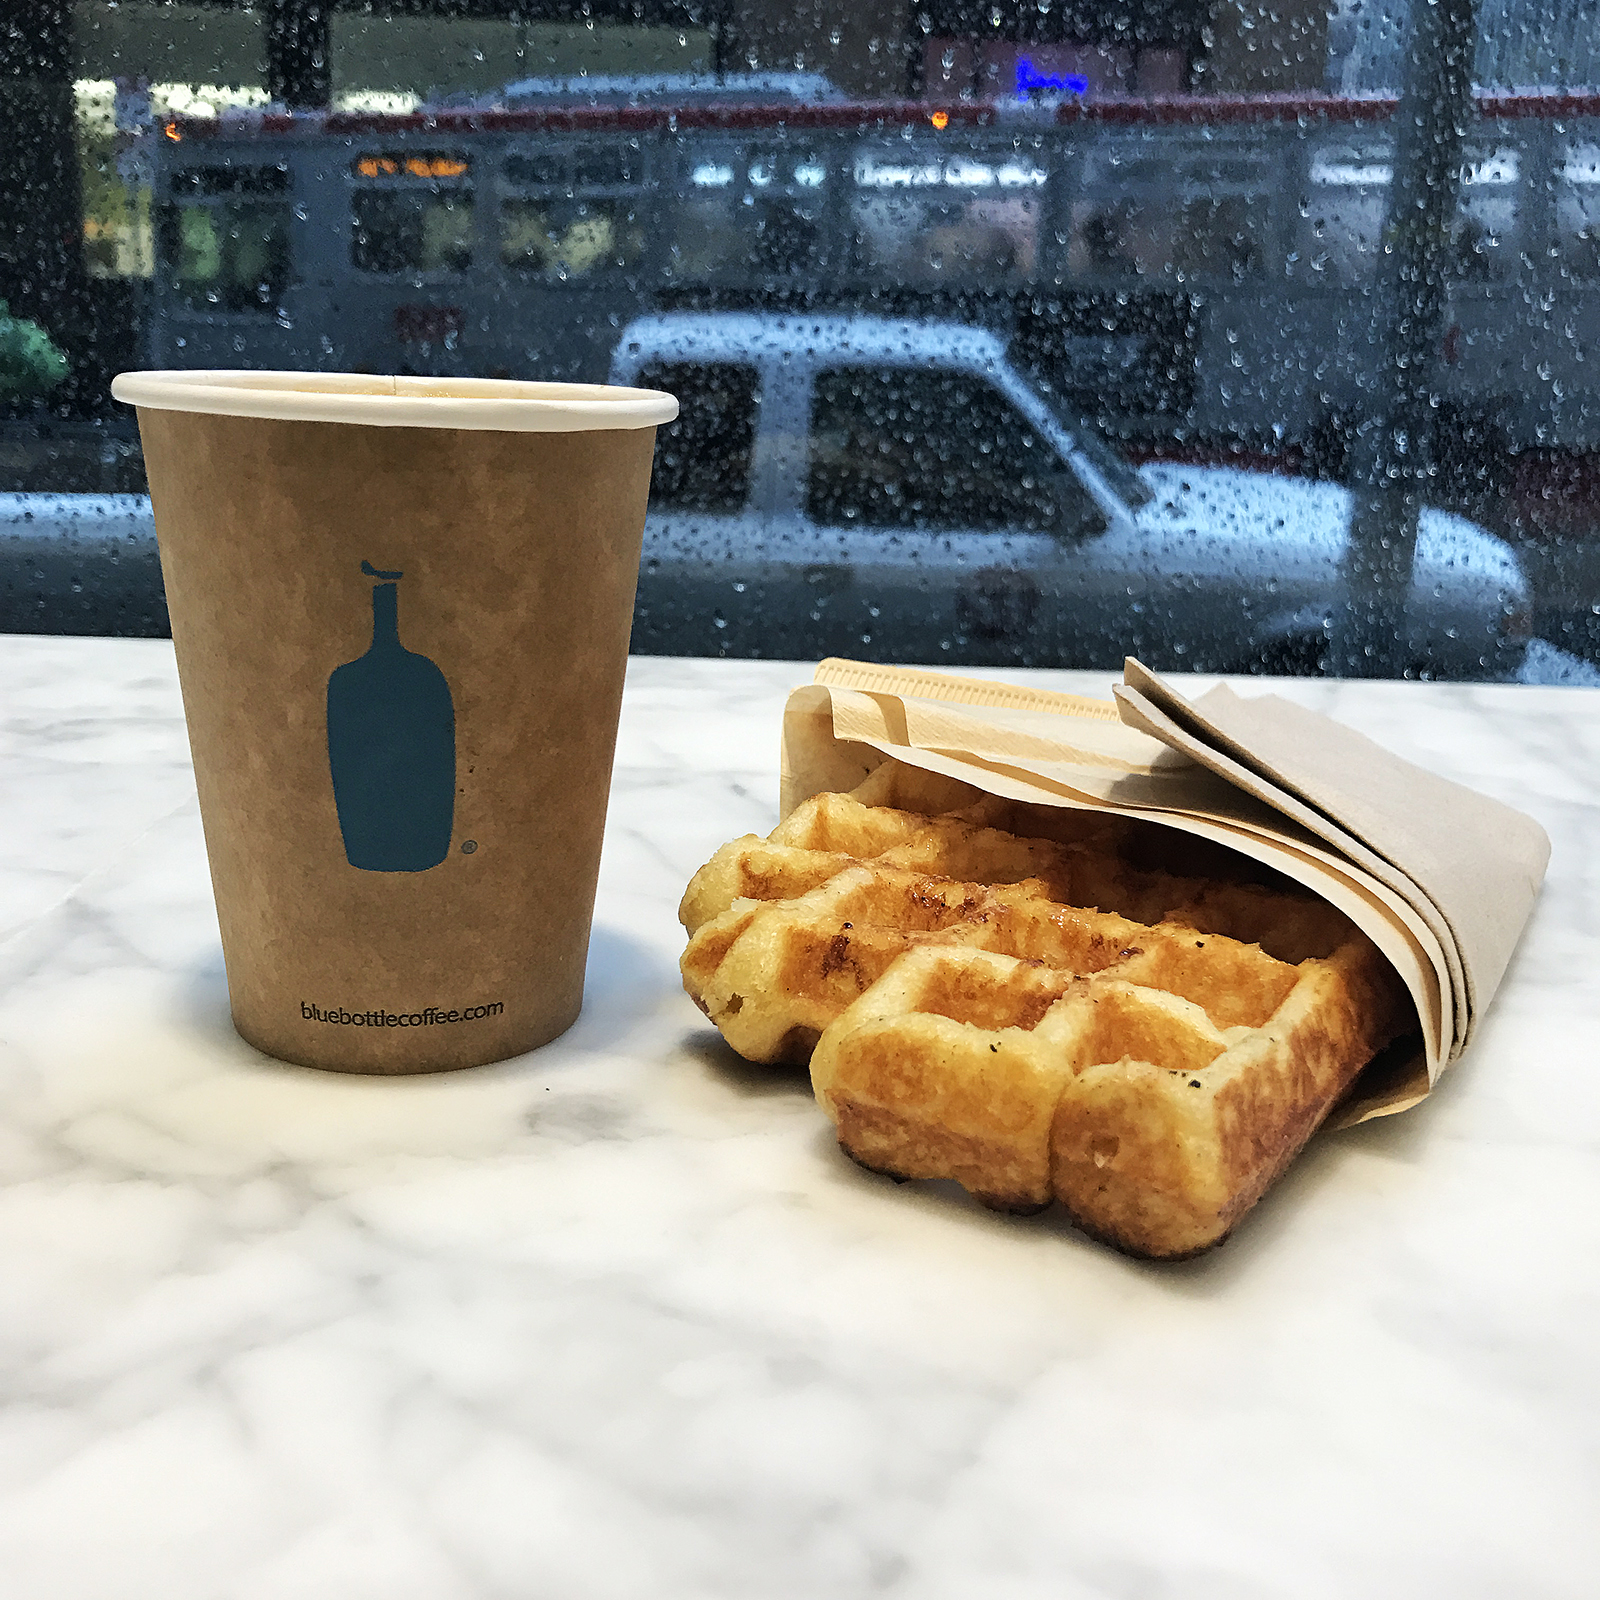 Blue Bottle FiDi